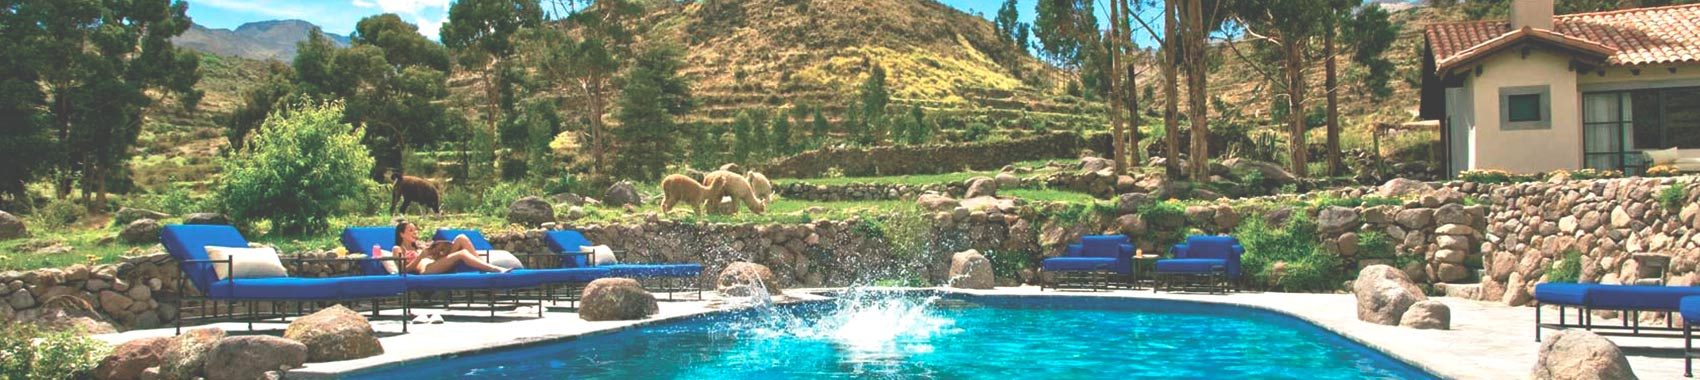 Best Colca Canyon Hotels